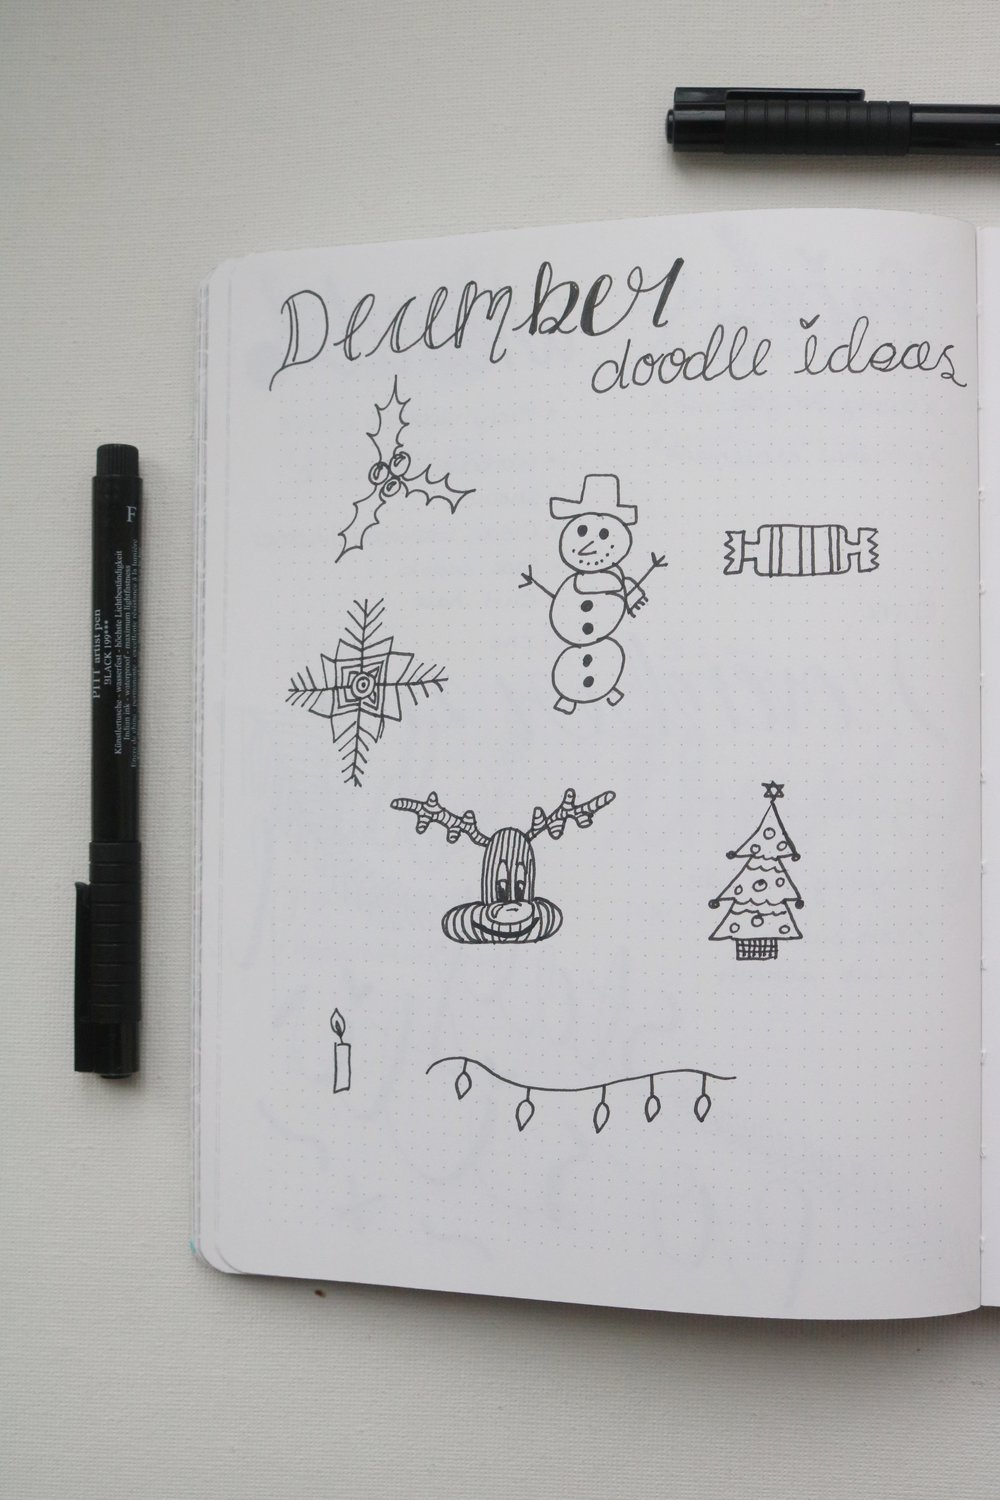 Doodle Page - I decided to have a doodle page this month for some ideas of what Christmassy things I could draw.